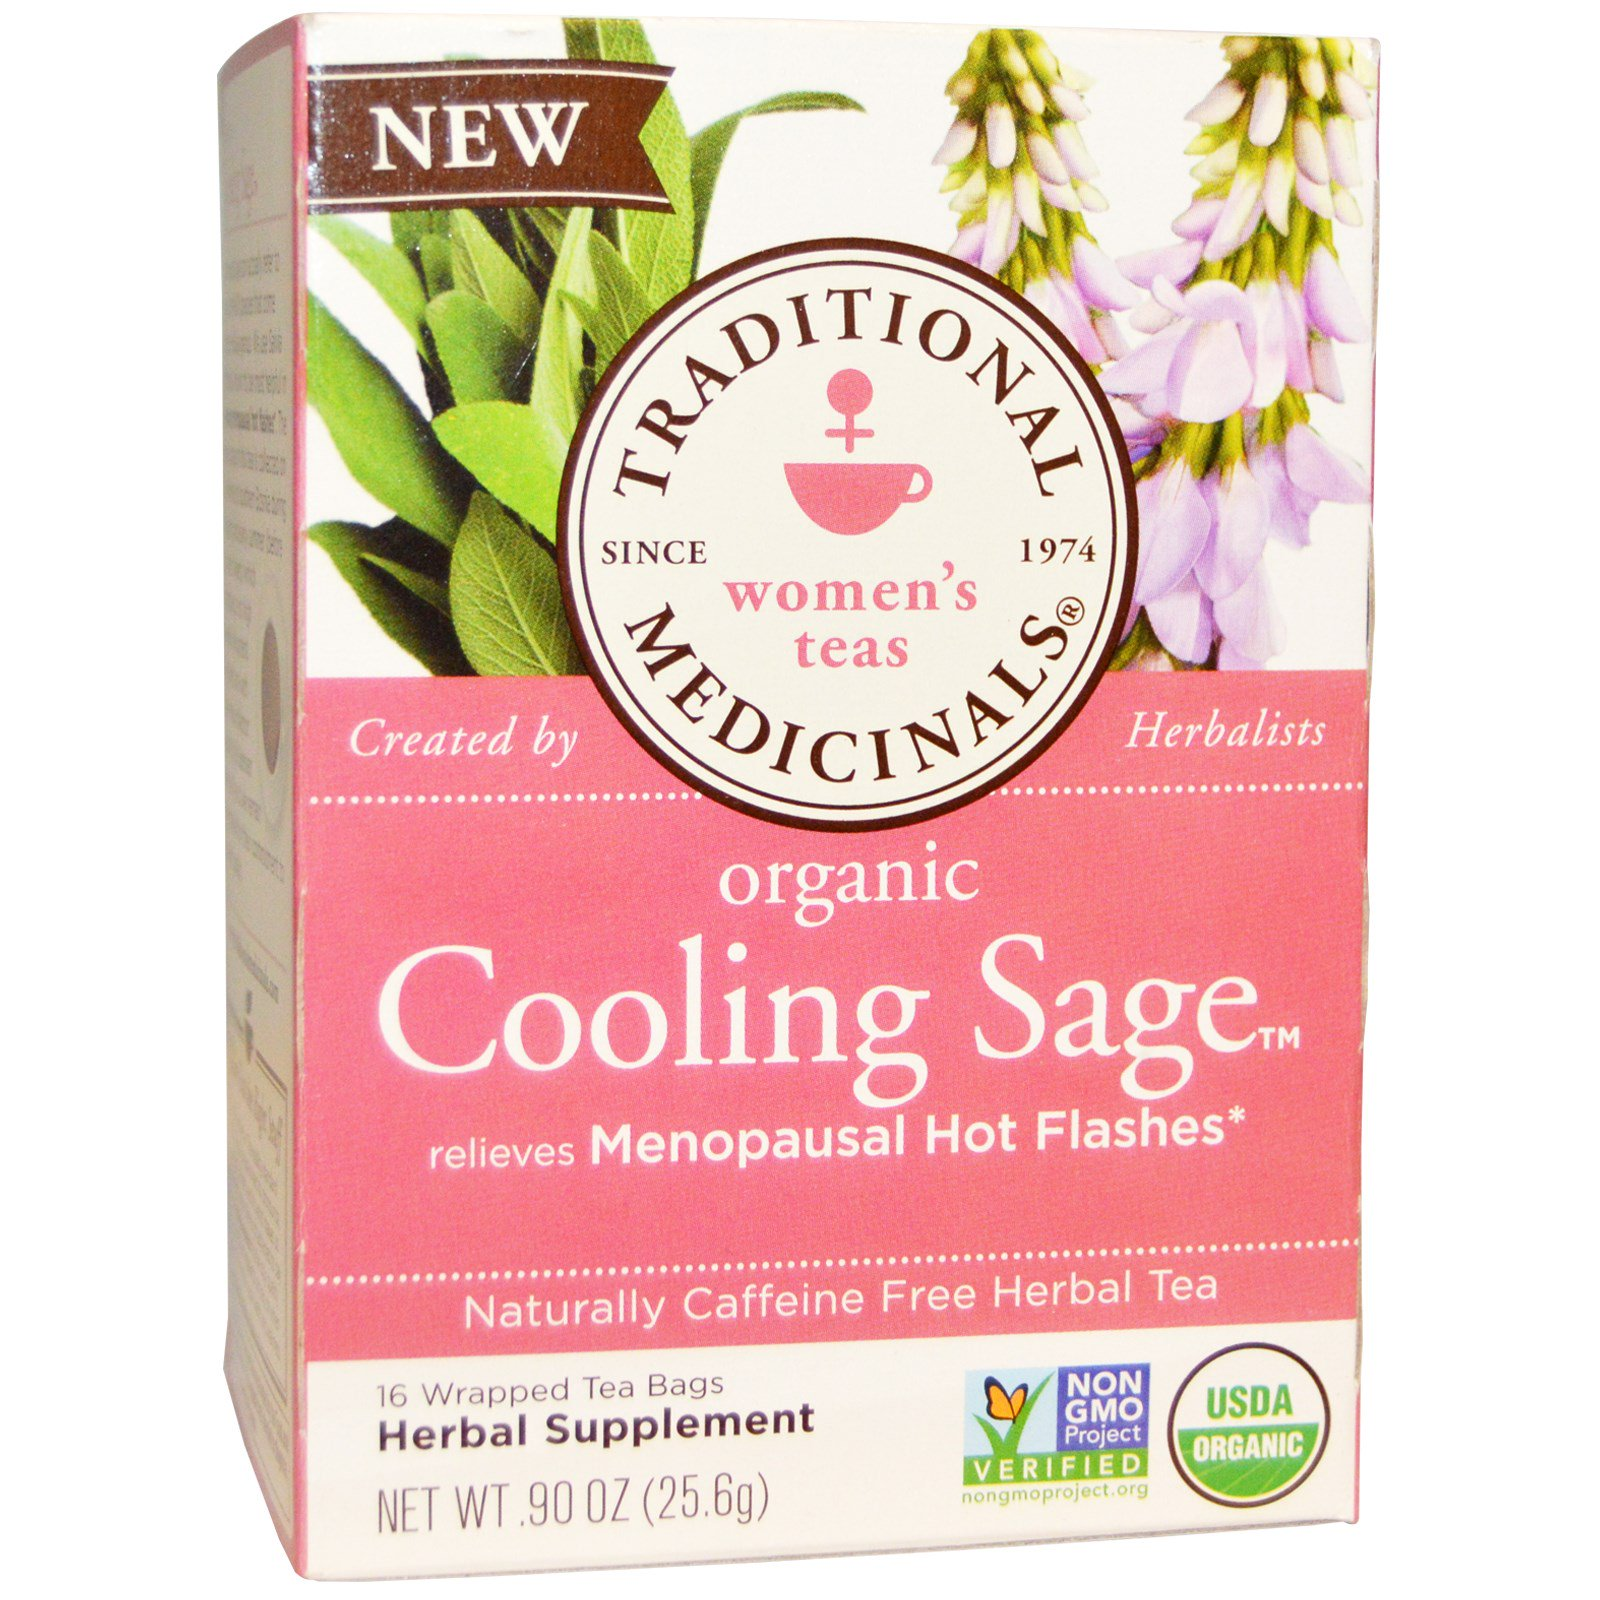 Traditional Medicinals Organic Cooling Sage Tea Caffeine Free 16 Wred Bags